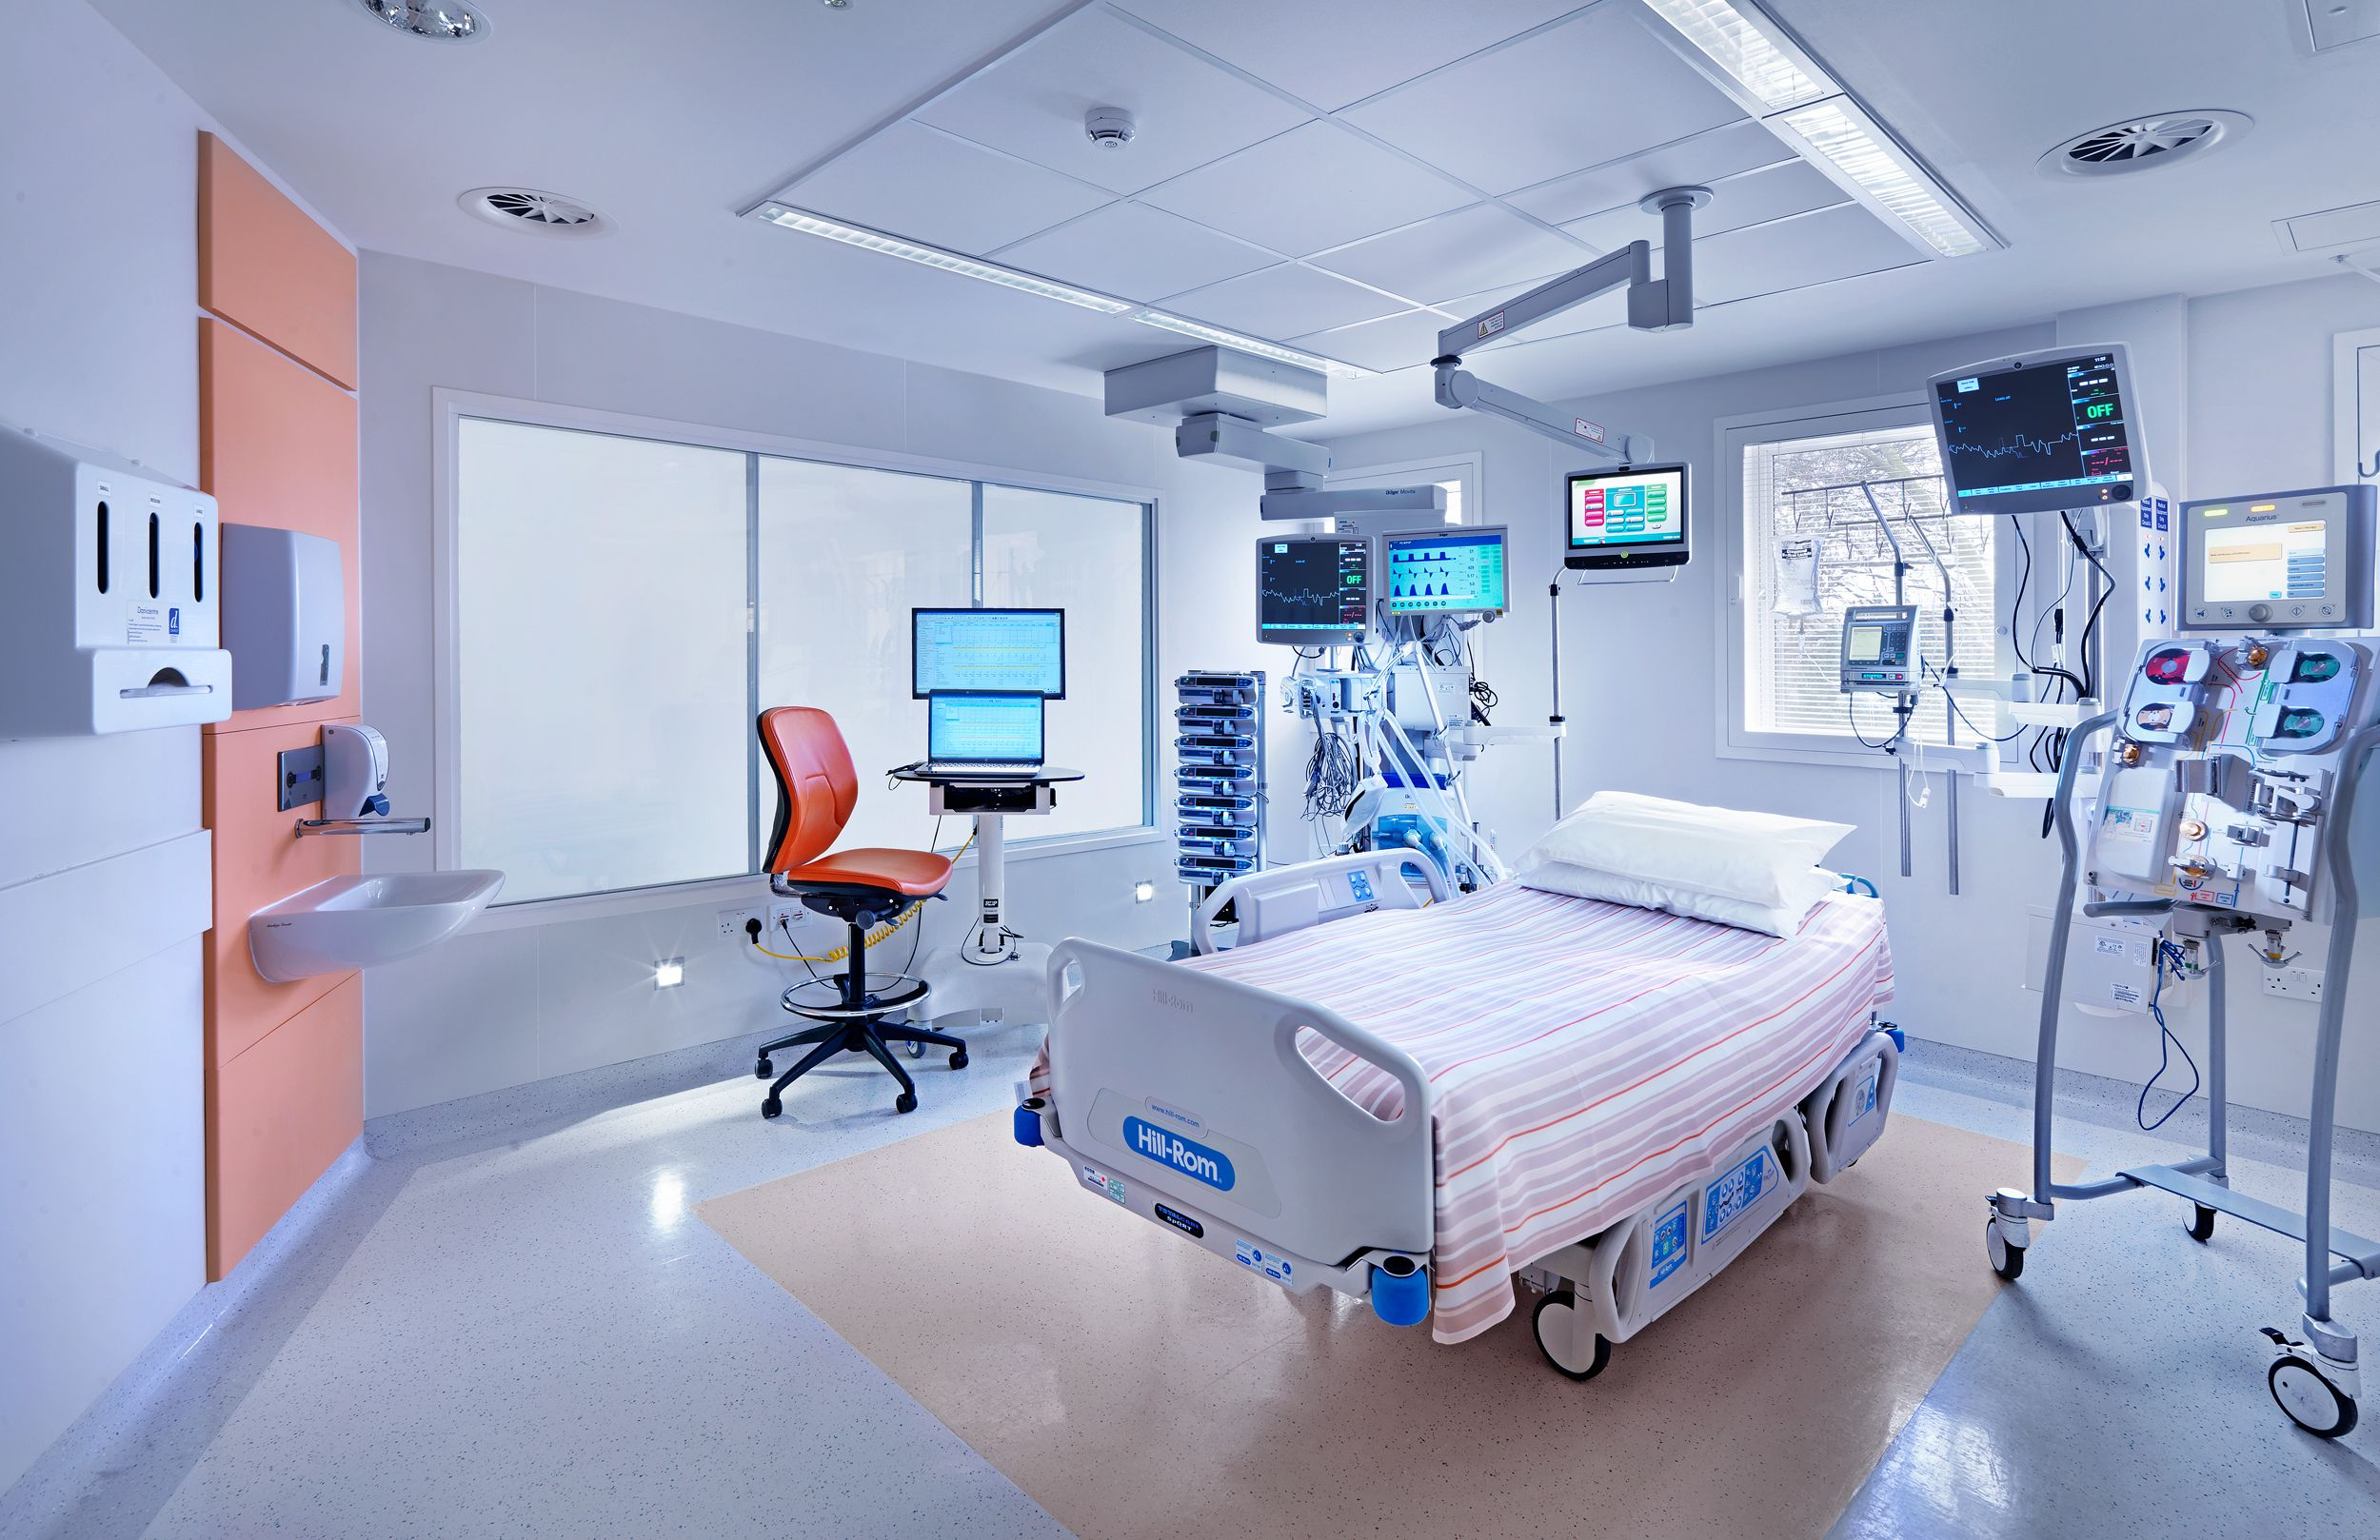 The Lister Hospital's Critical Care Unit is equipped with